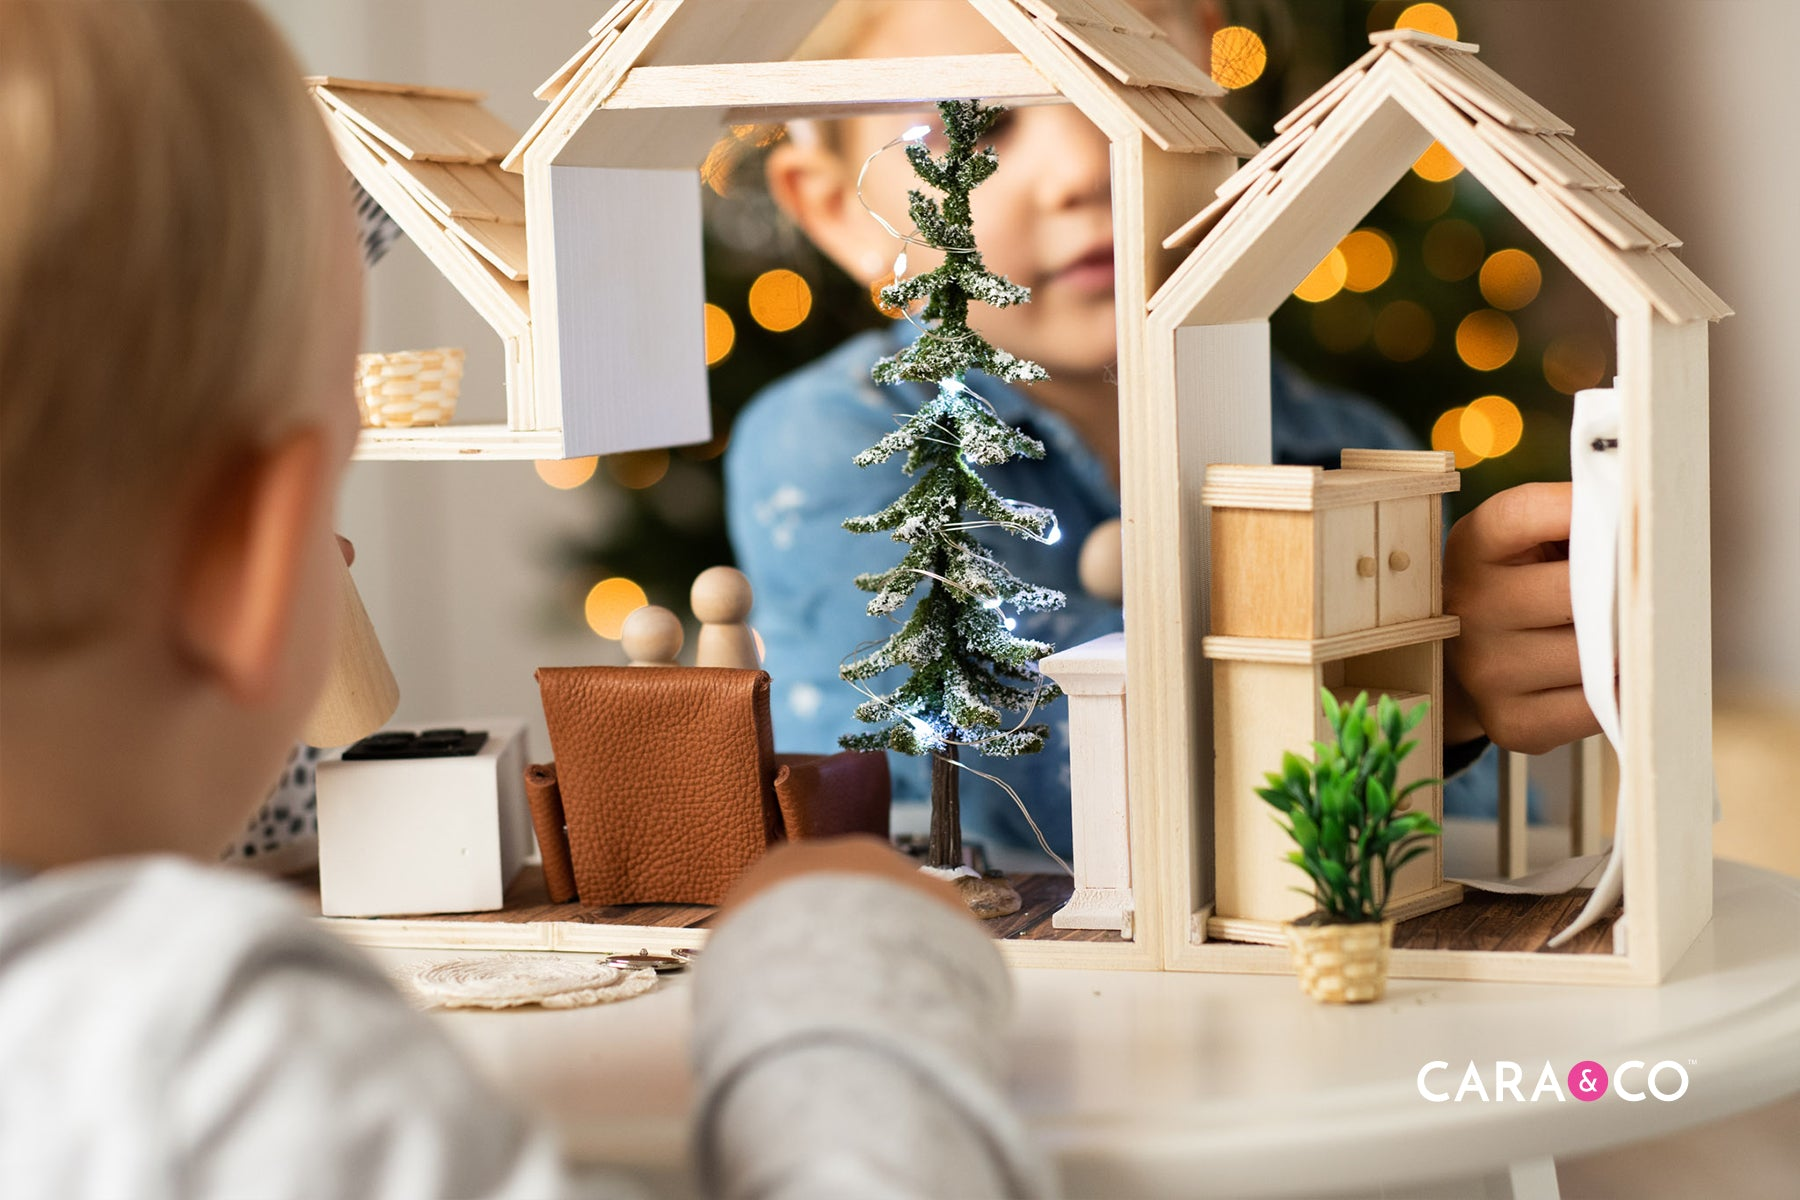 DIY dollhouse children's Christmas gift ideas